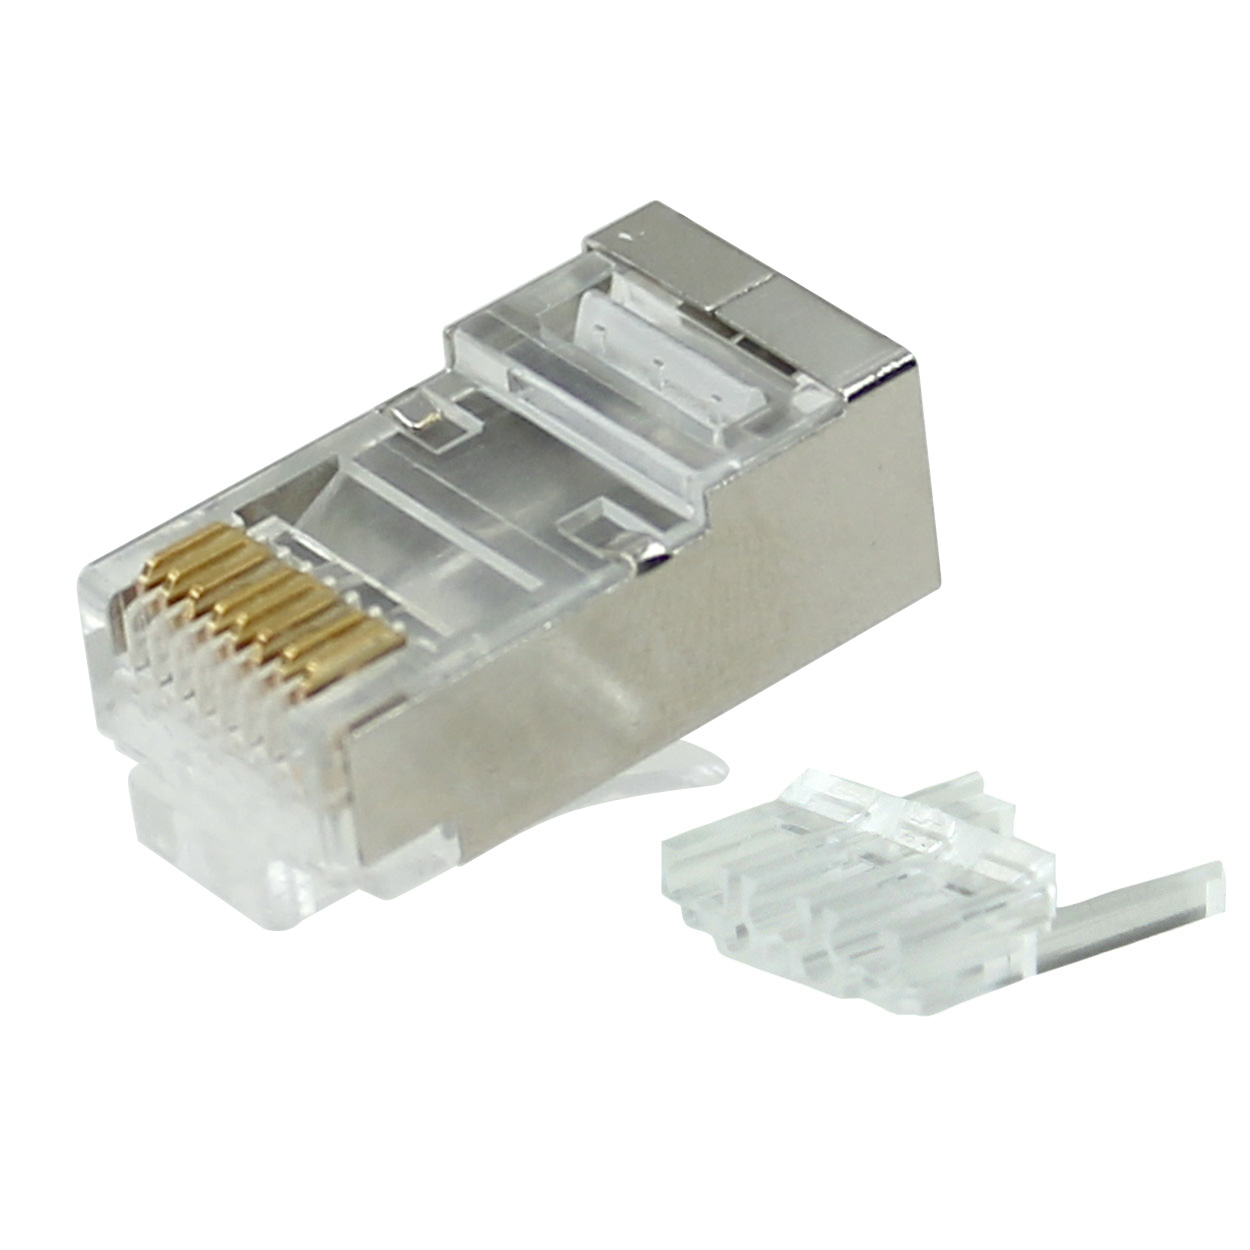 rj45 8p8c plug connector for stranded or solid cat6 wire wiring rj45 cat6 cat6a shielded long body modular plug 2pcs type for rj45 8p8c plug connector for stranded or solid cat6 wire